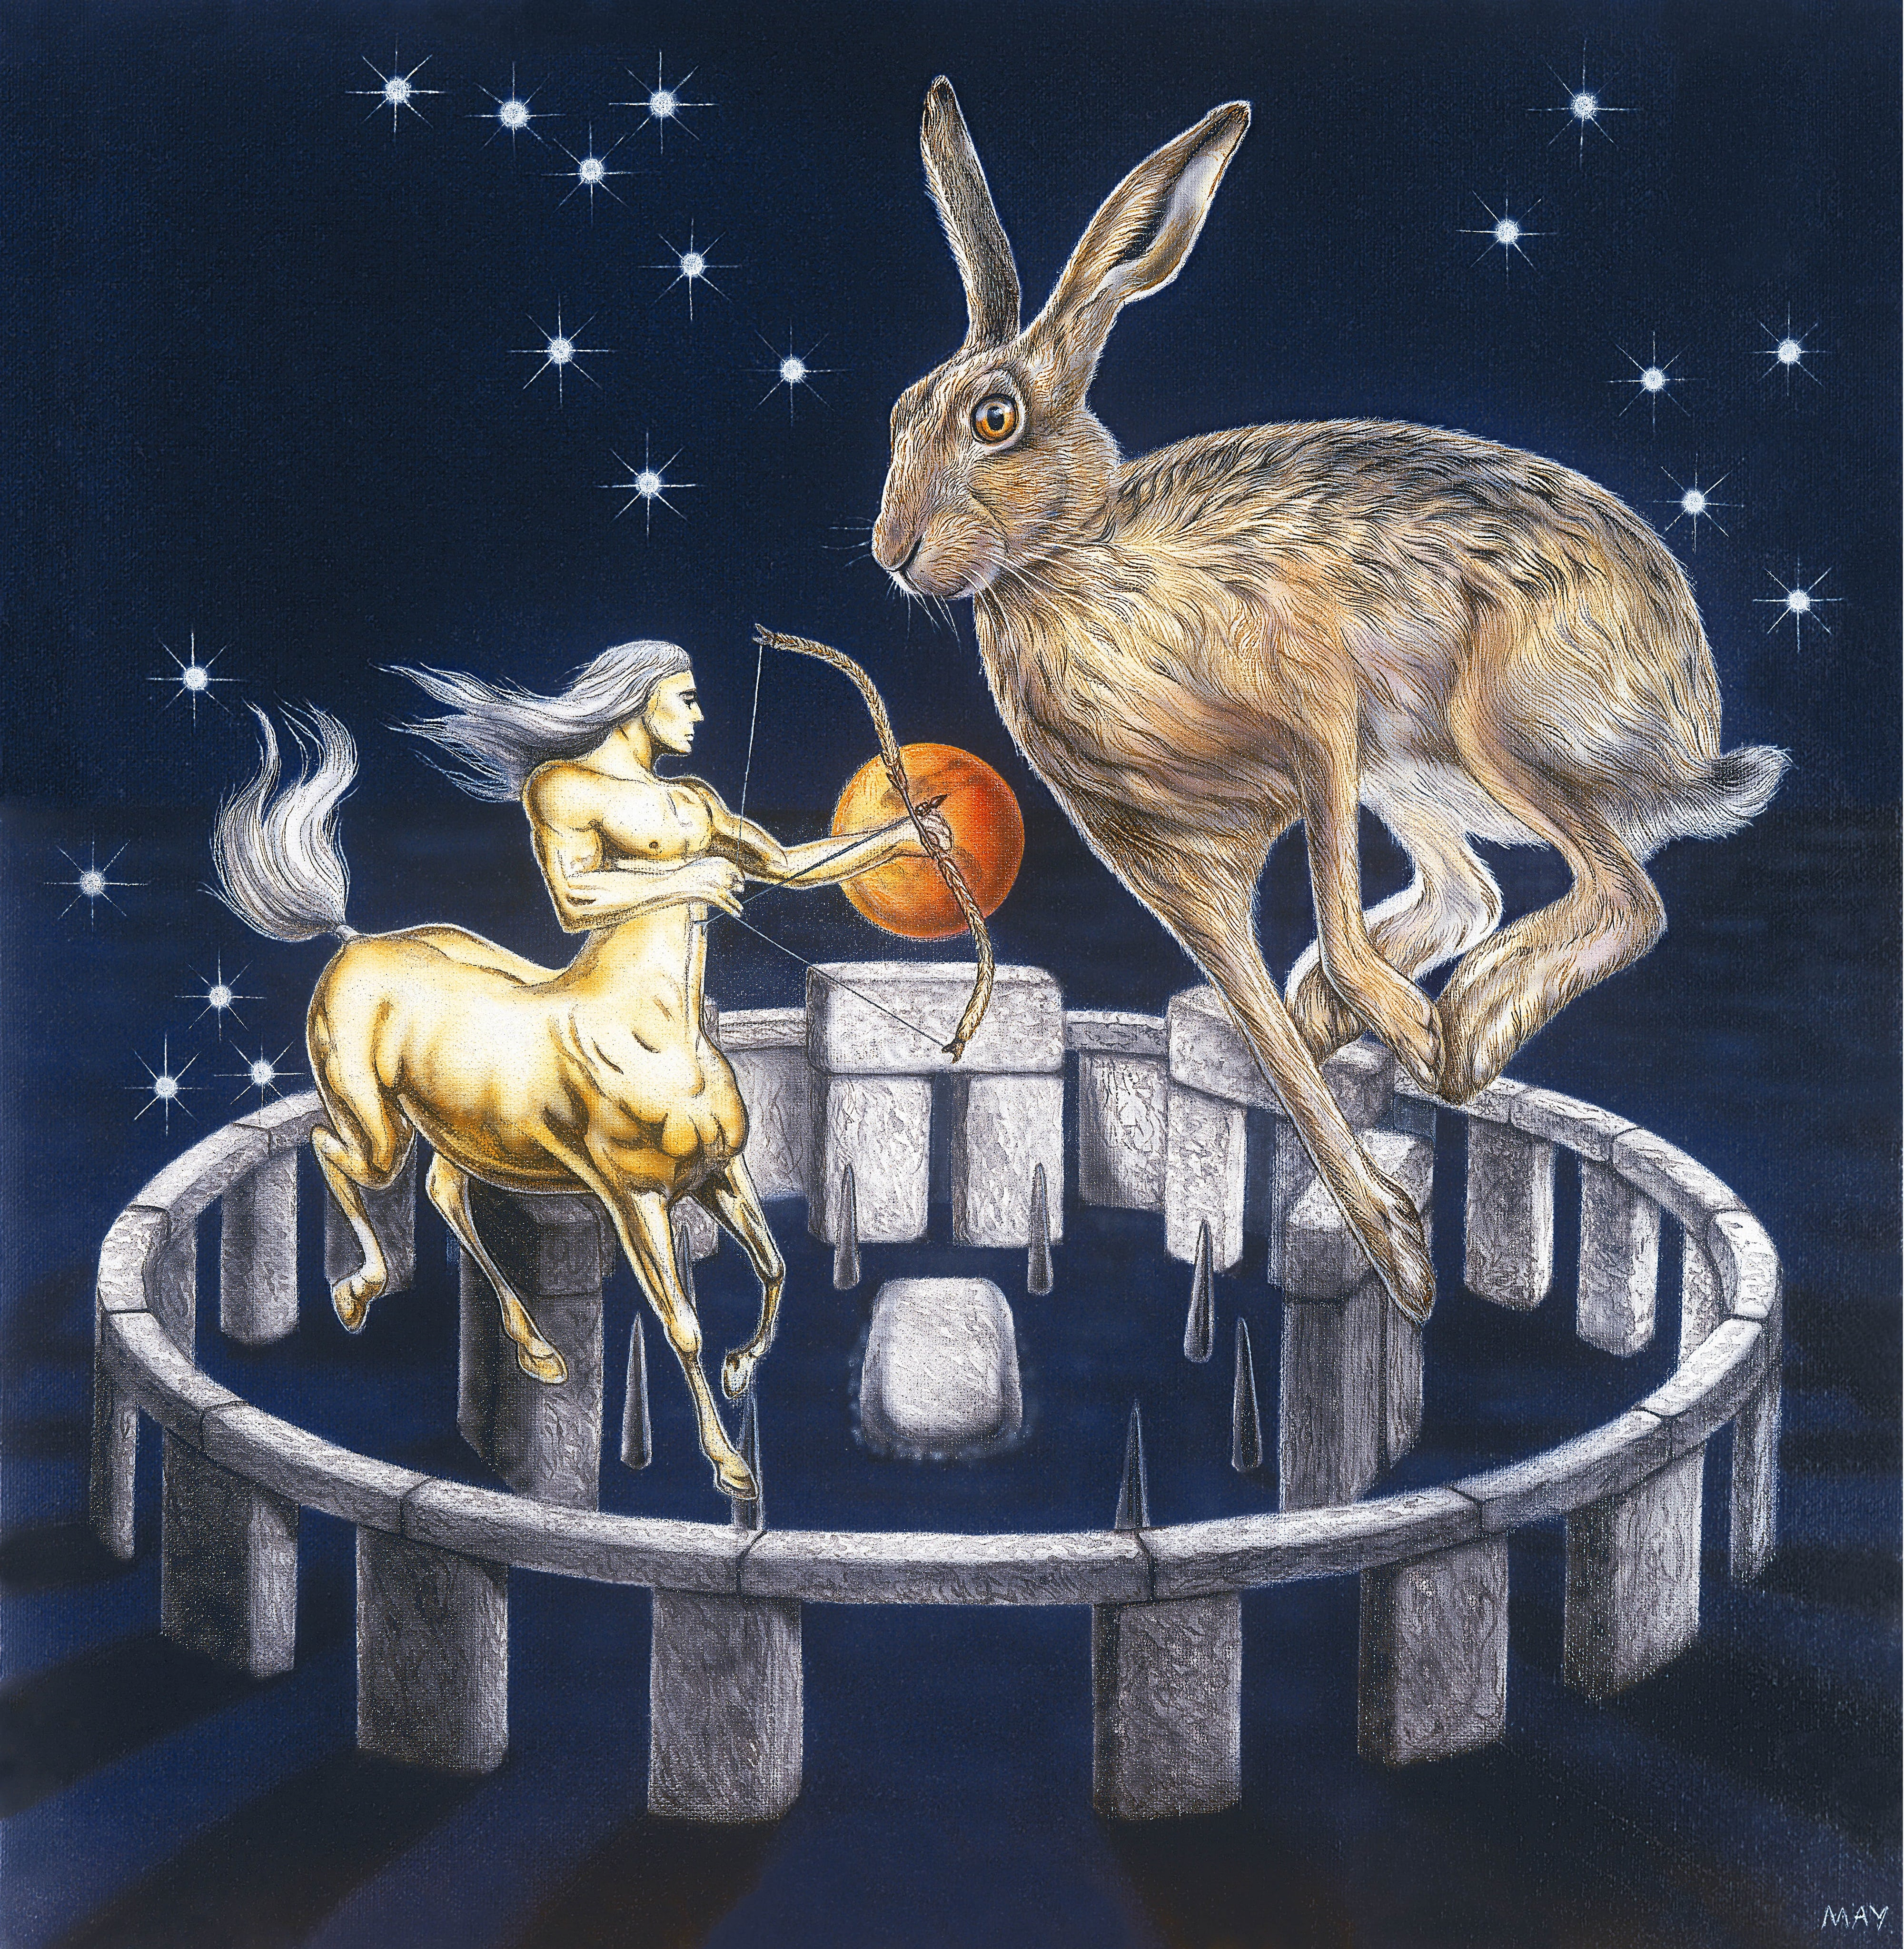 Sagittarius Hare by Joanna May. A Hare is leaping inside the Stonehenge stone circle. inside the circle is also an Archer; the Centaur is shooting a bow and arrow – he is shooting towards the heart of the hare a cupid arrow of love to freedom which the hare is a totem of.